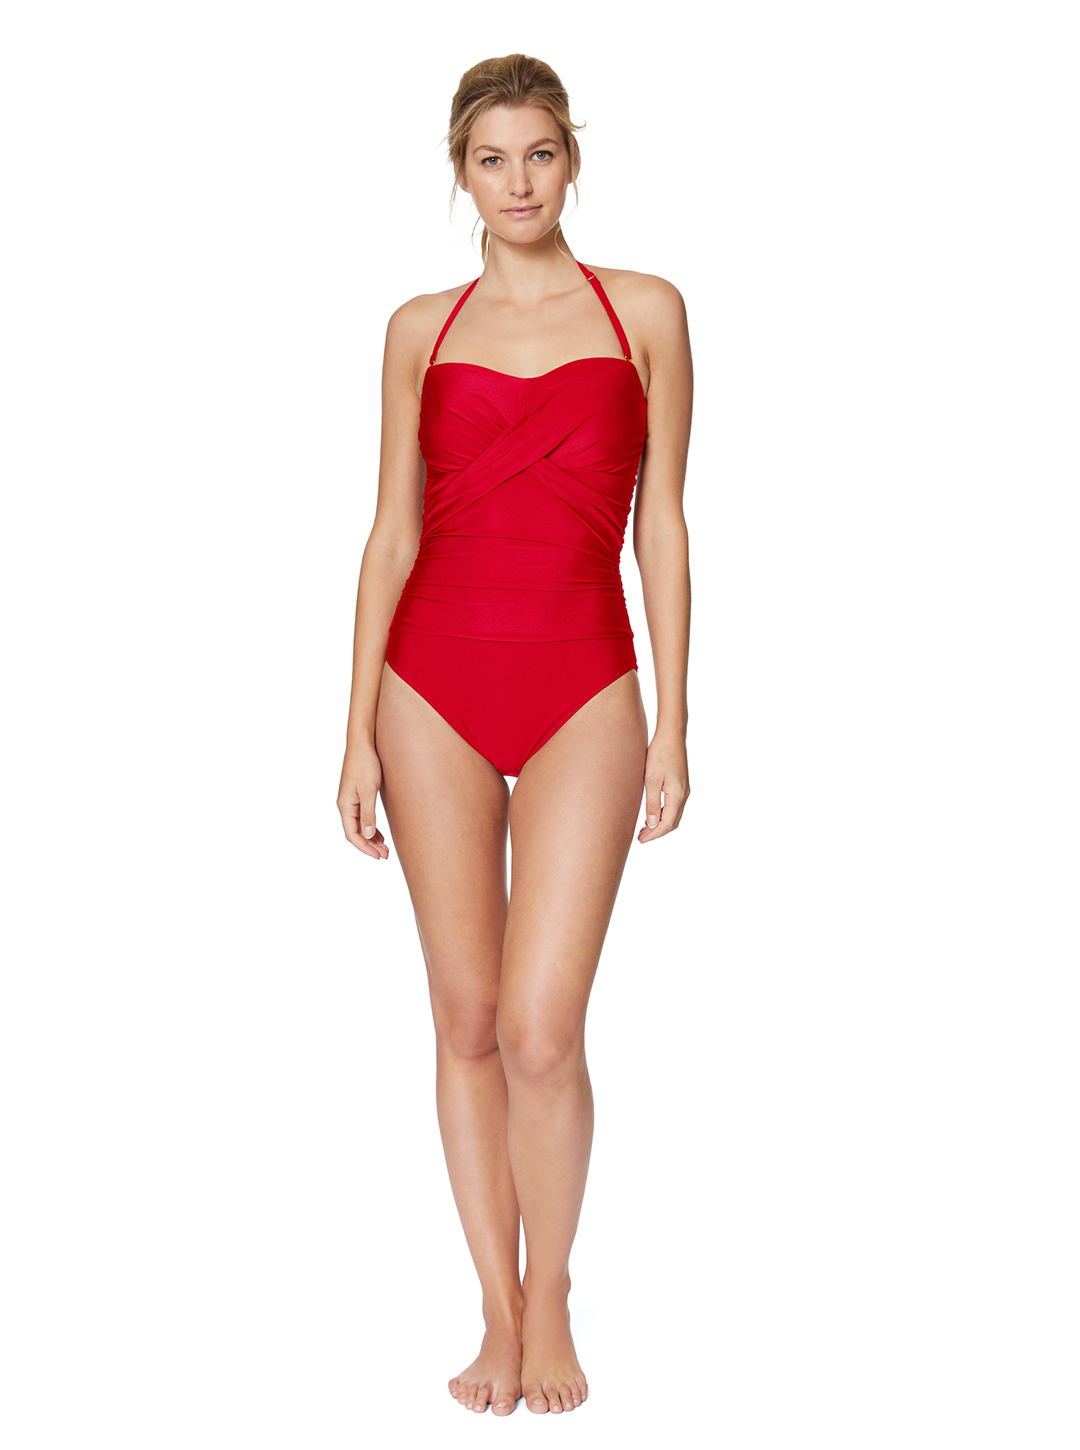 Tahari® Ultra Luxe Bandeau One Piece Swimsuit -Red - Front